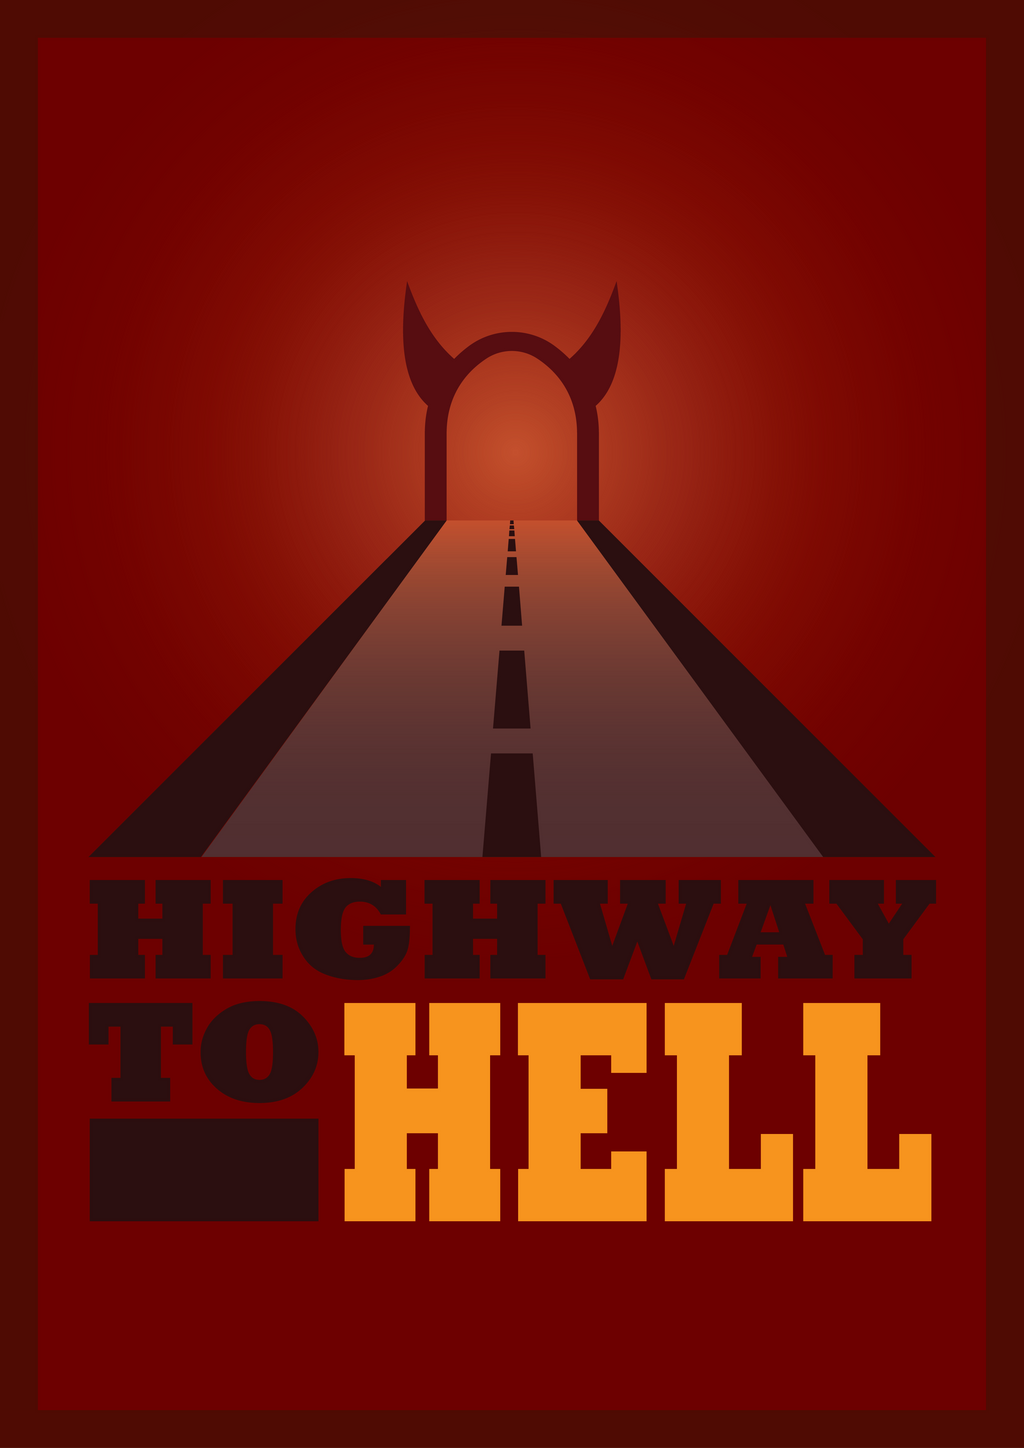 Acdc highway to hell wallpaper